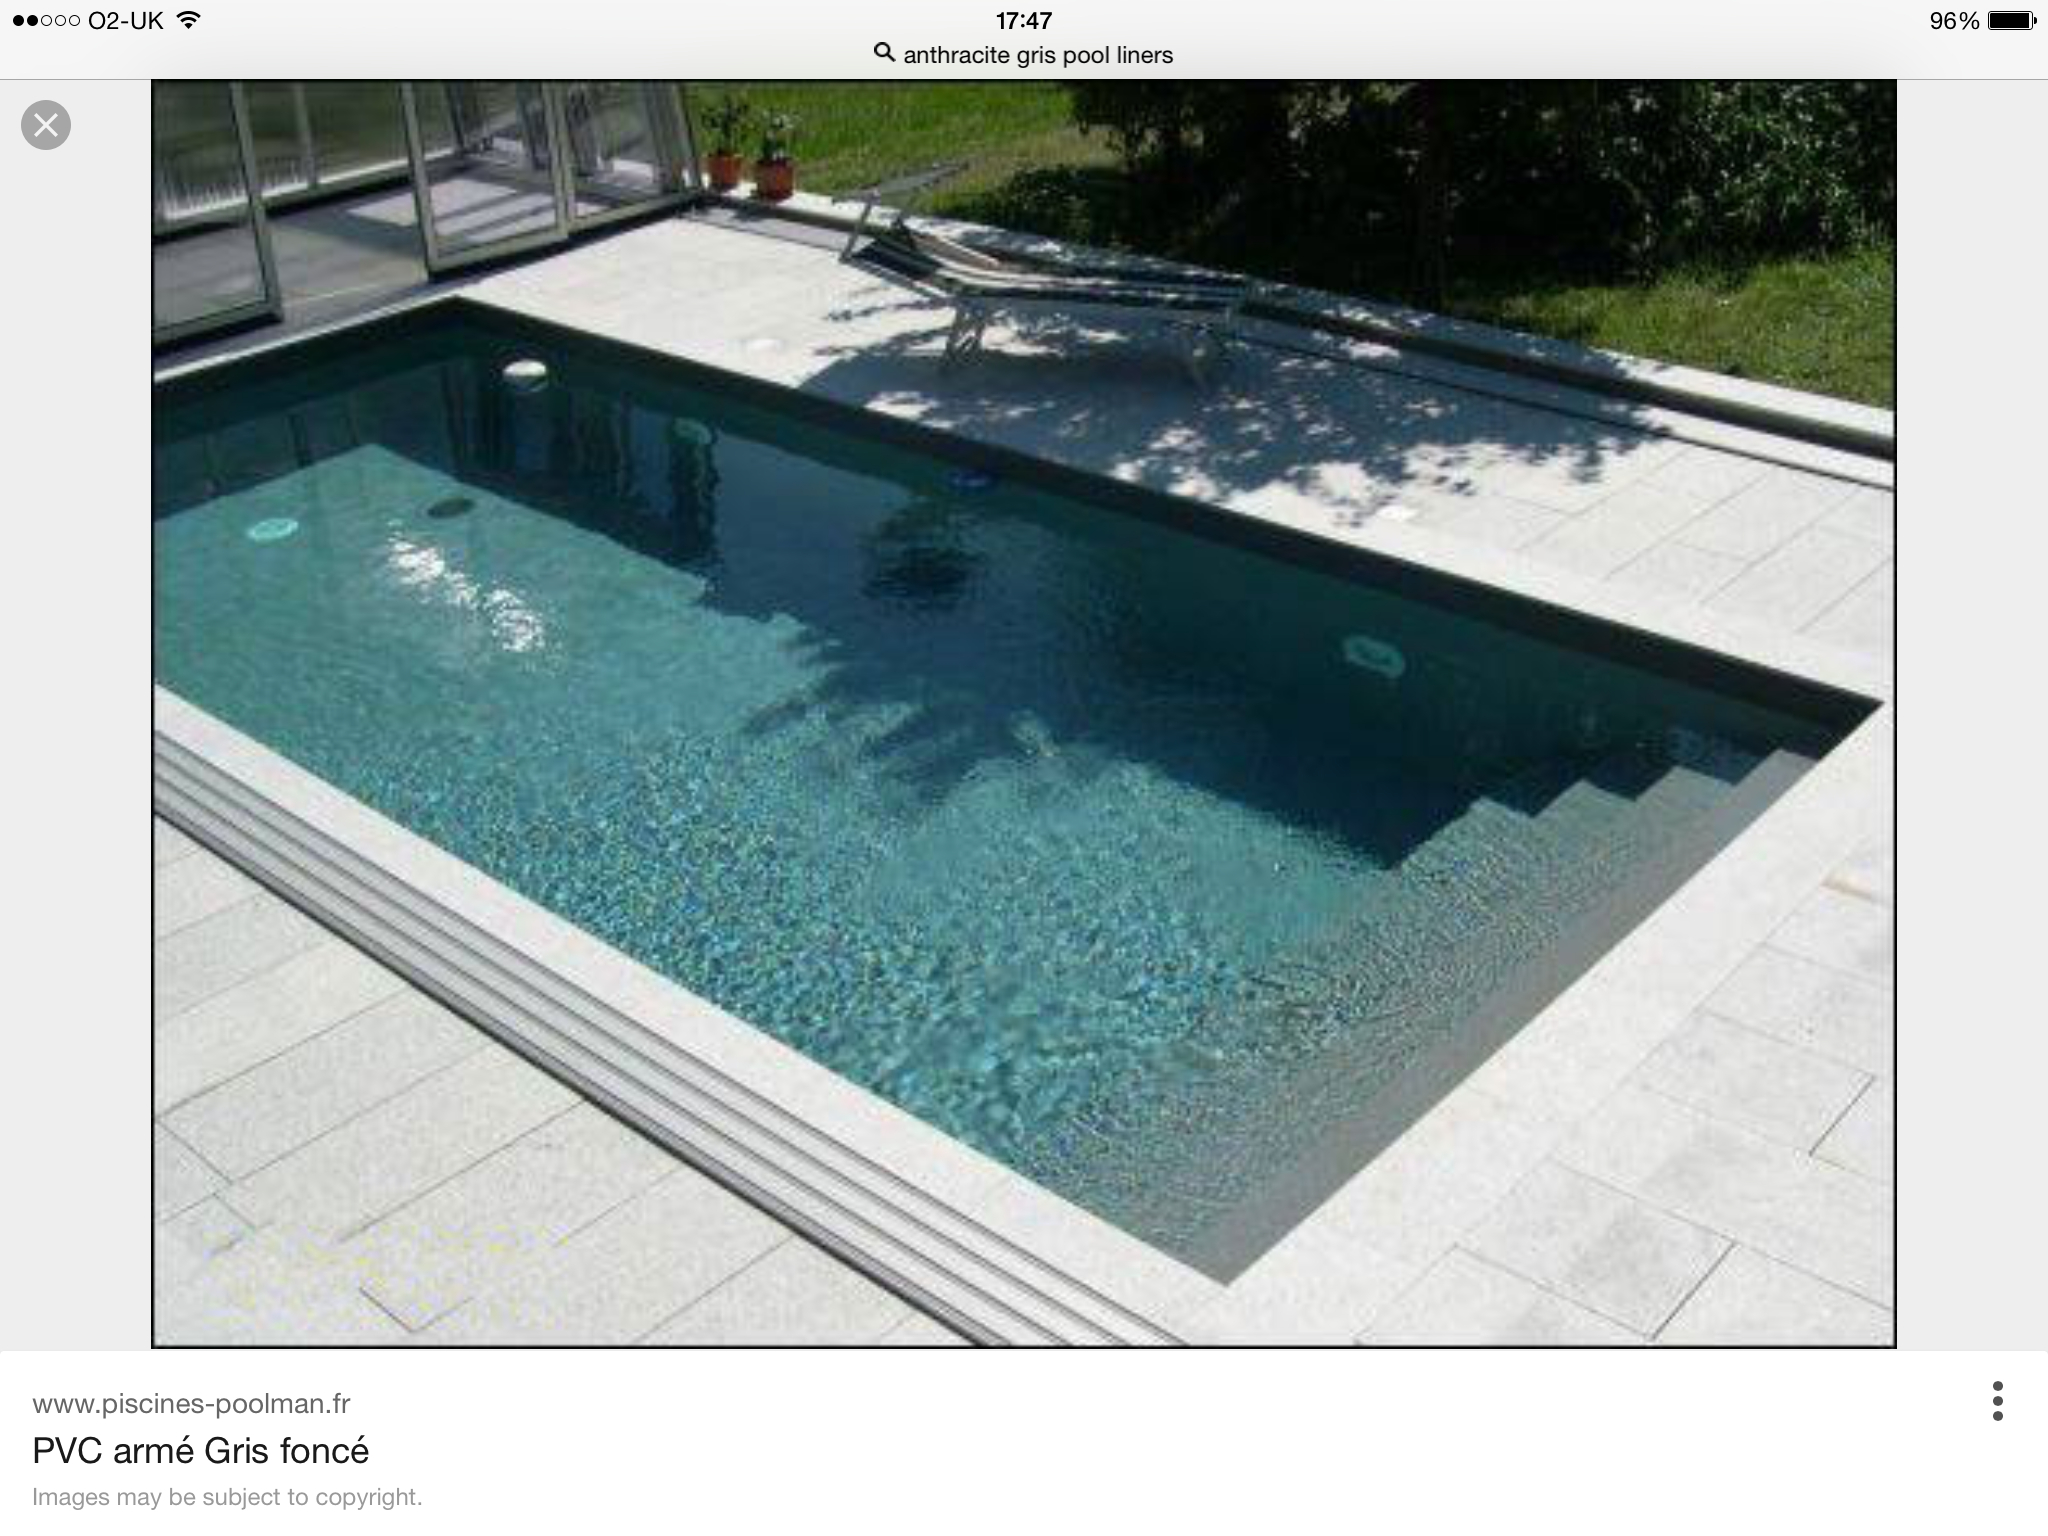 Pin By Yoss Kaouk On Pool | Coastal Gardens, Garden ... concernant Pose Liner Piscine